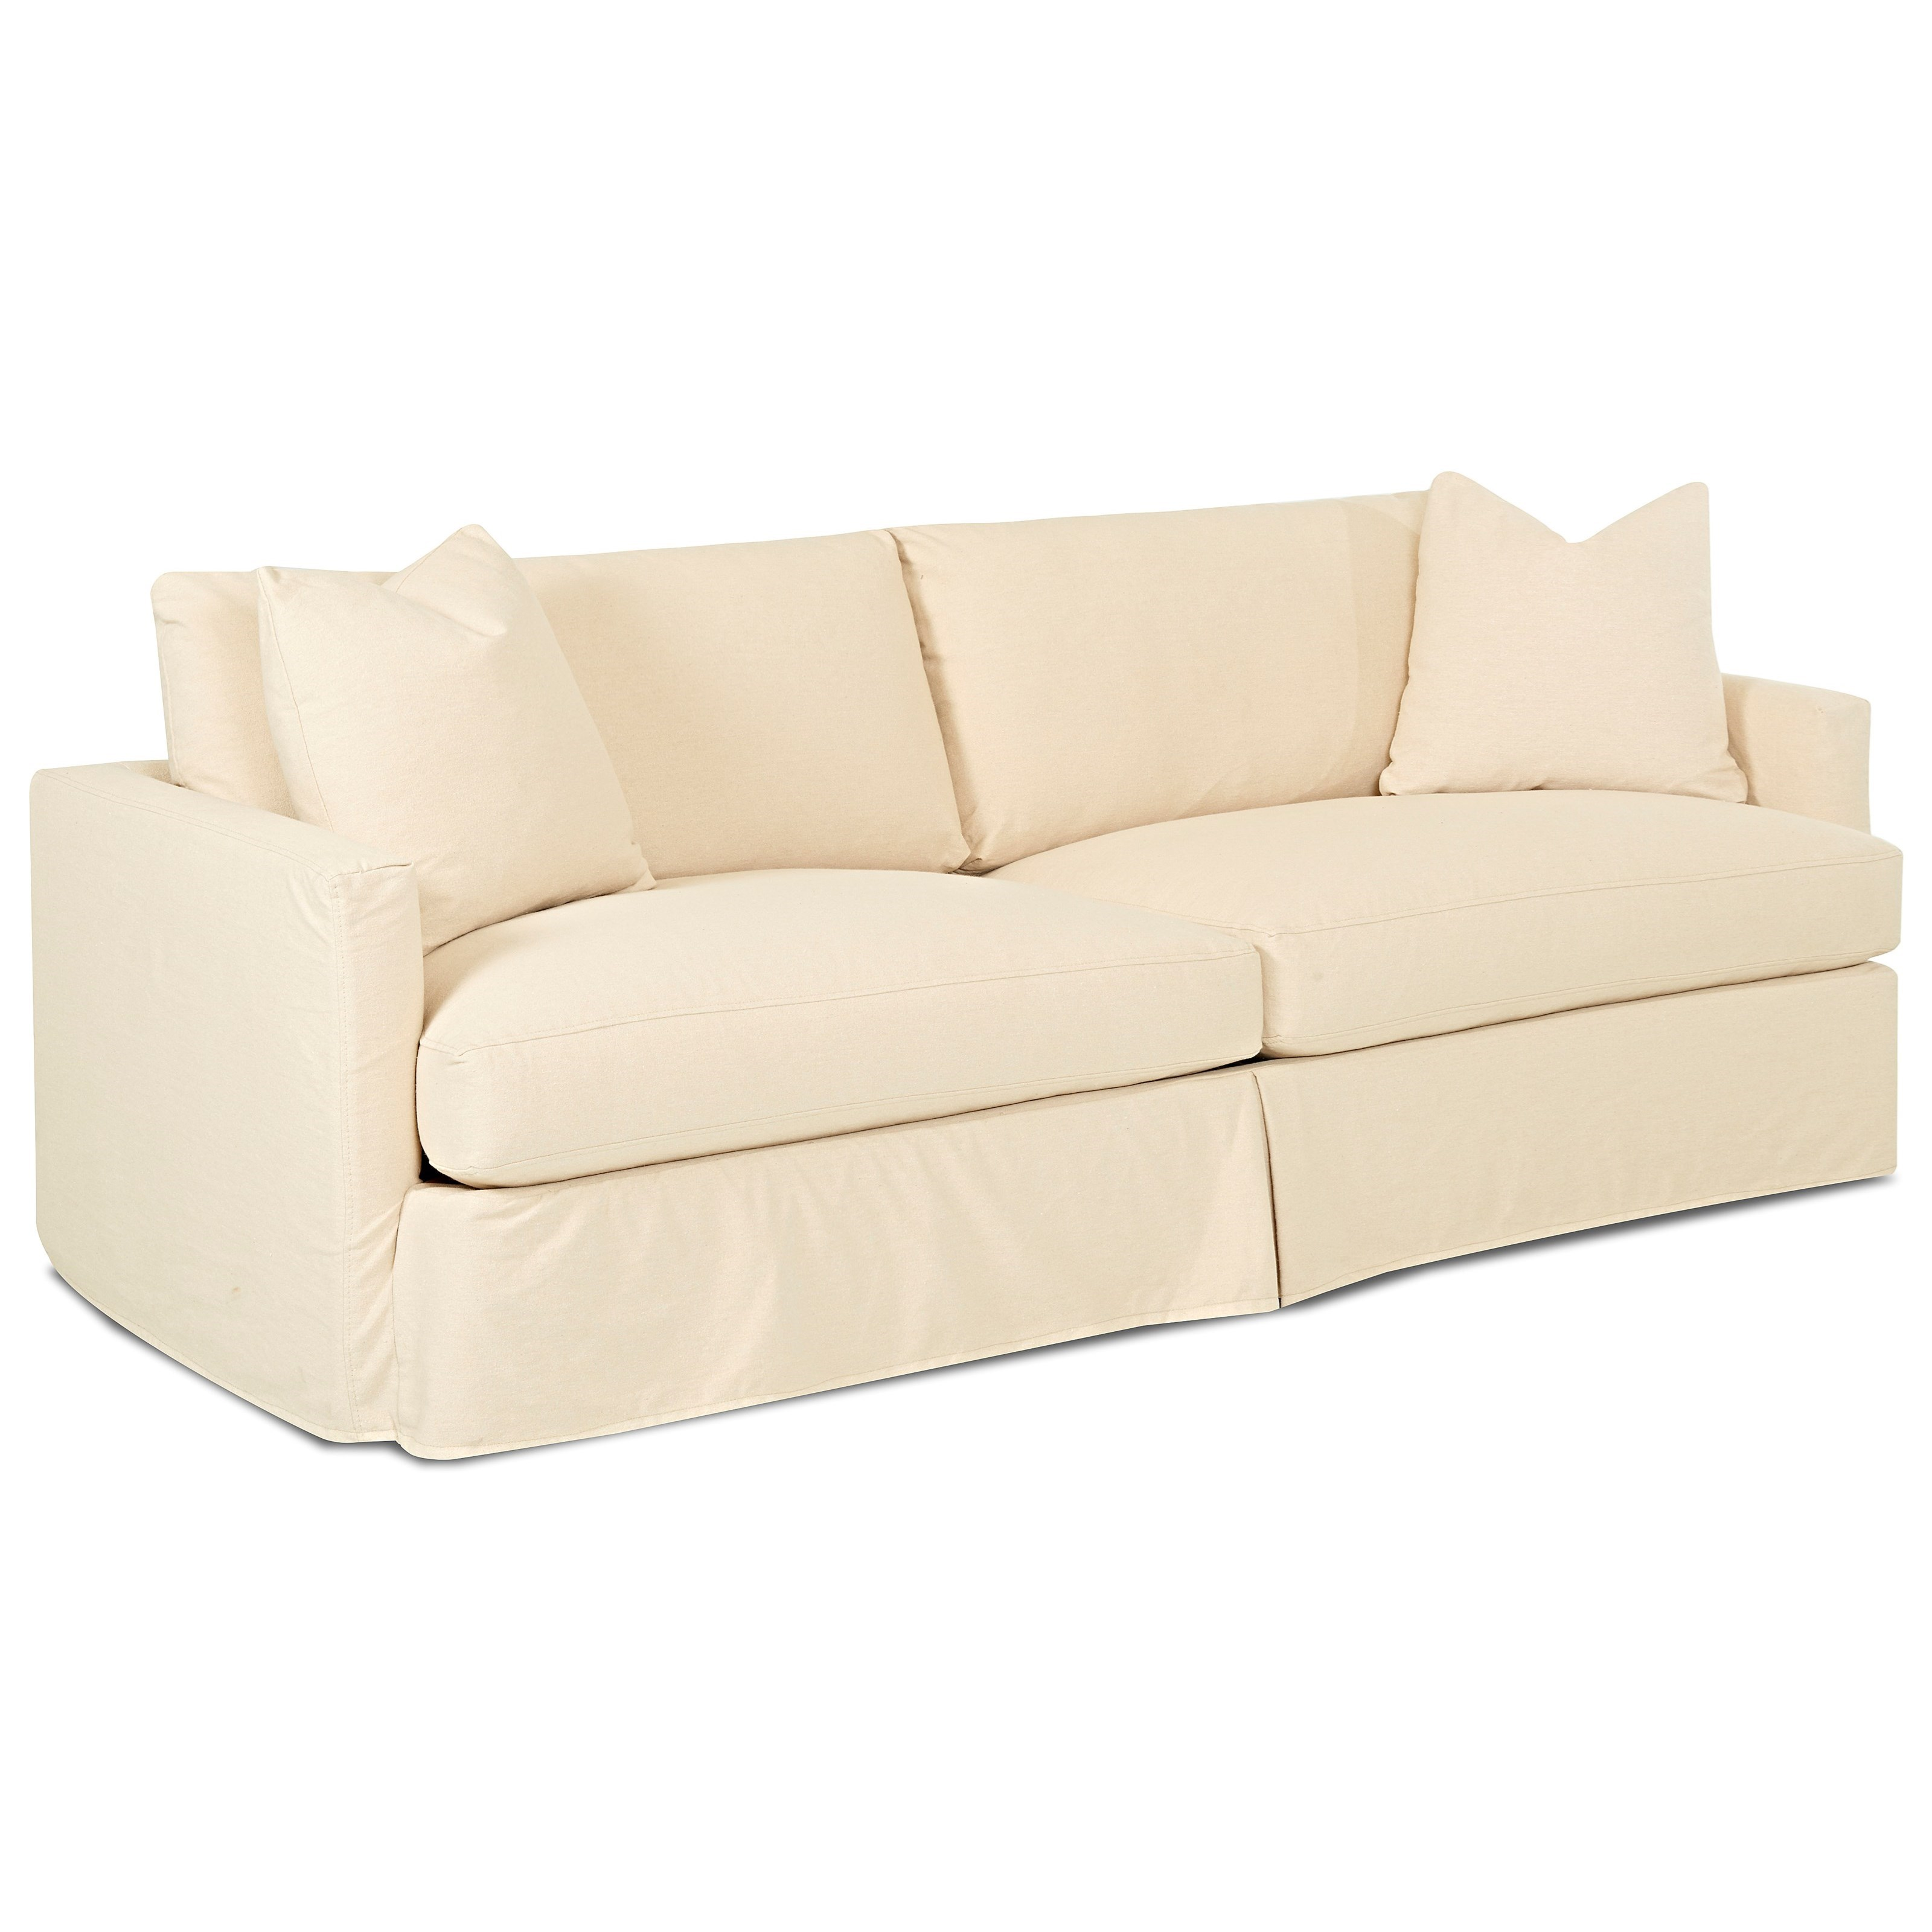 Klaussner Leisure D4133 Xs Extra Large Sofa With Slipcover Pilgrim Furniture City Sofa